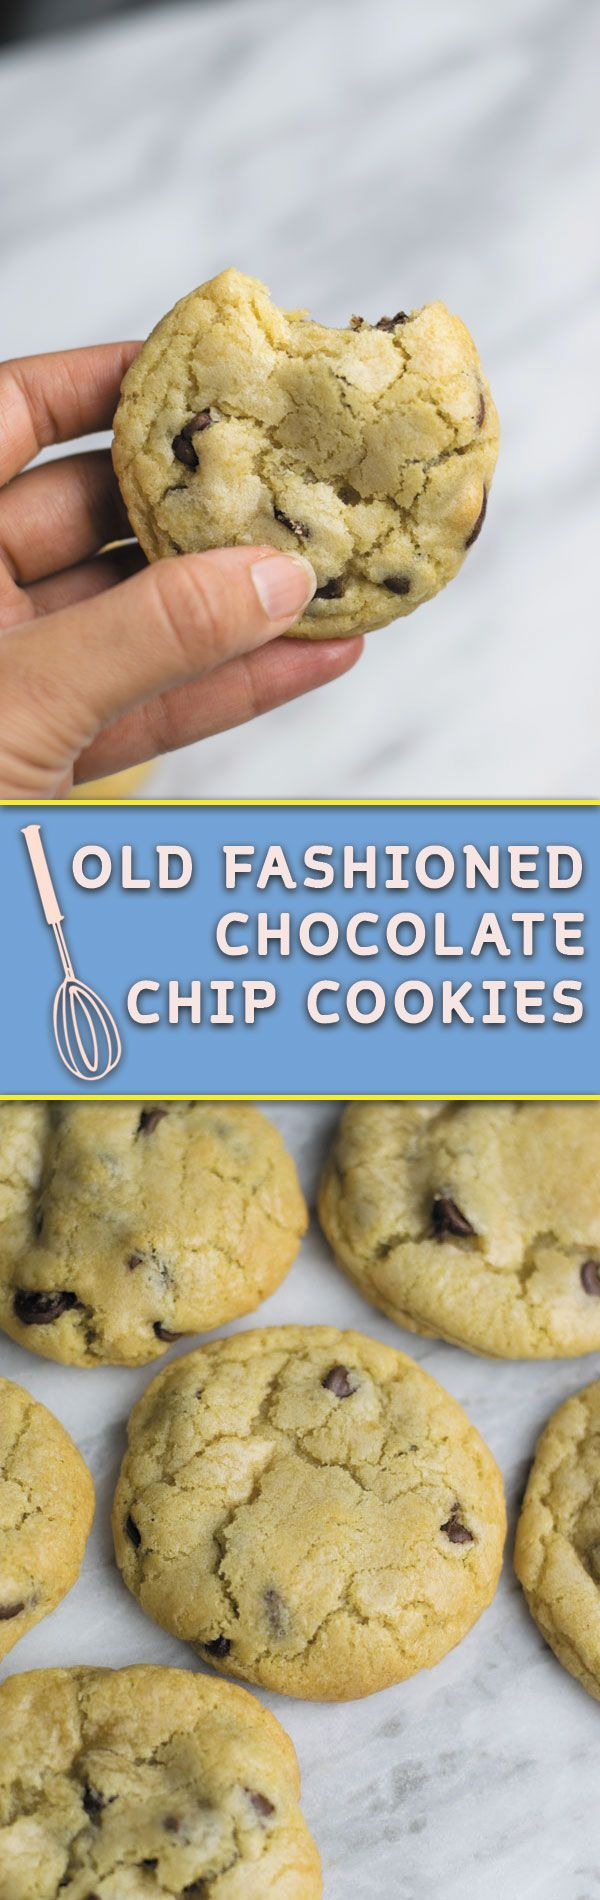 Old Fashioned Chocolate Chip Cookies - no fancy ingredient list, just few simple…